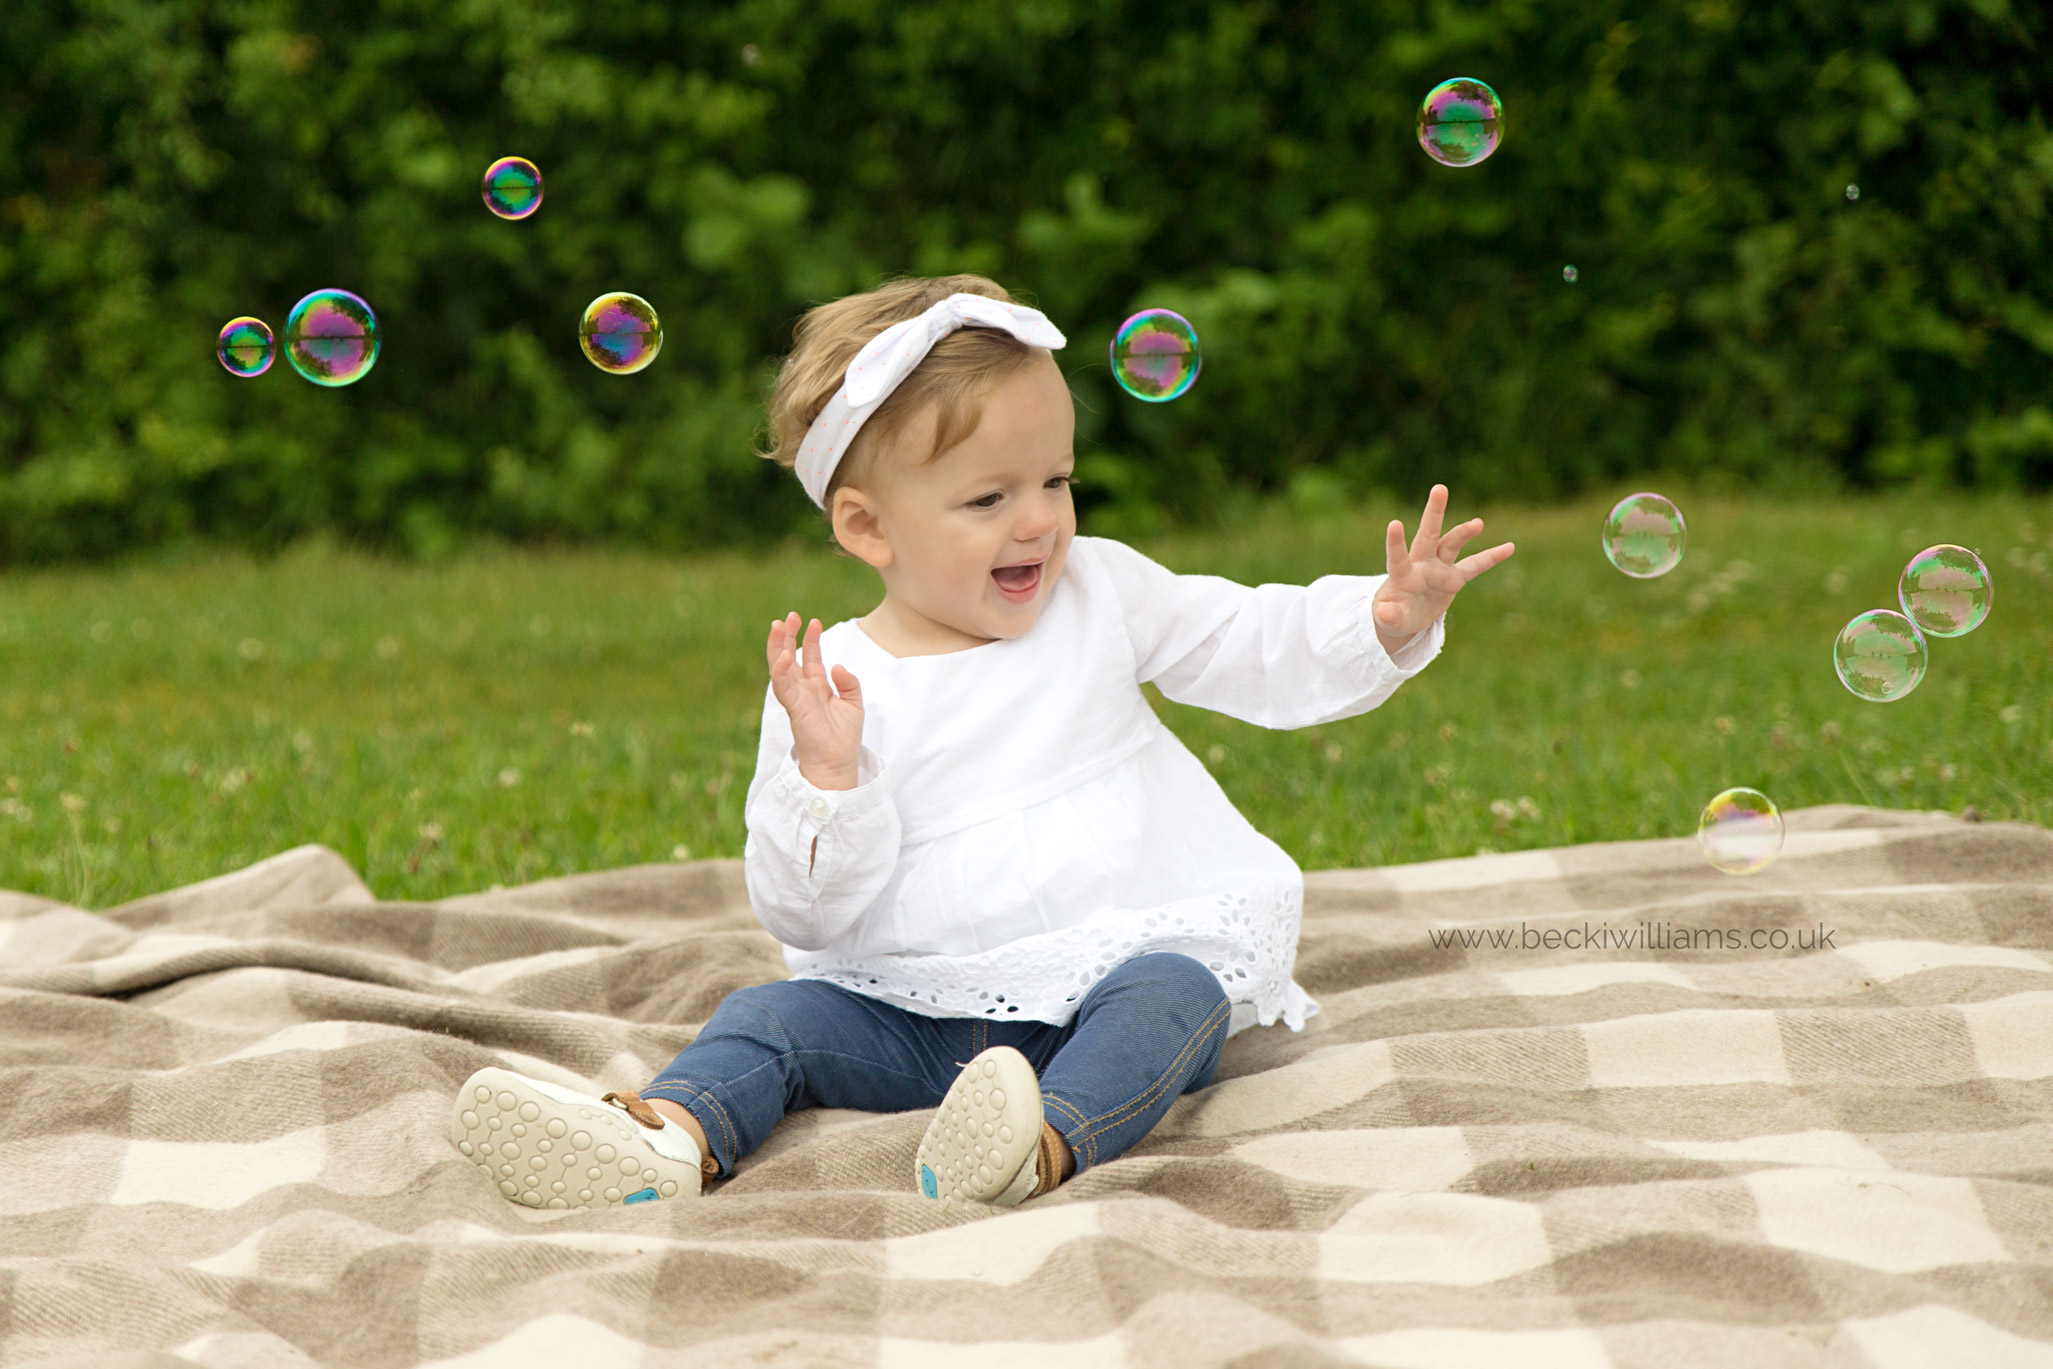 1 year old girl plays with bubbles in a park for photo shoot